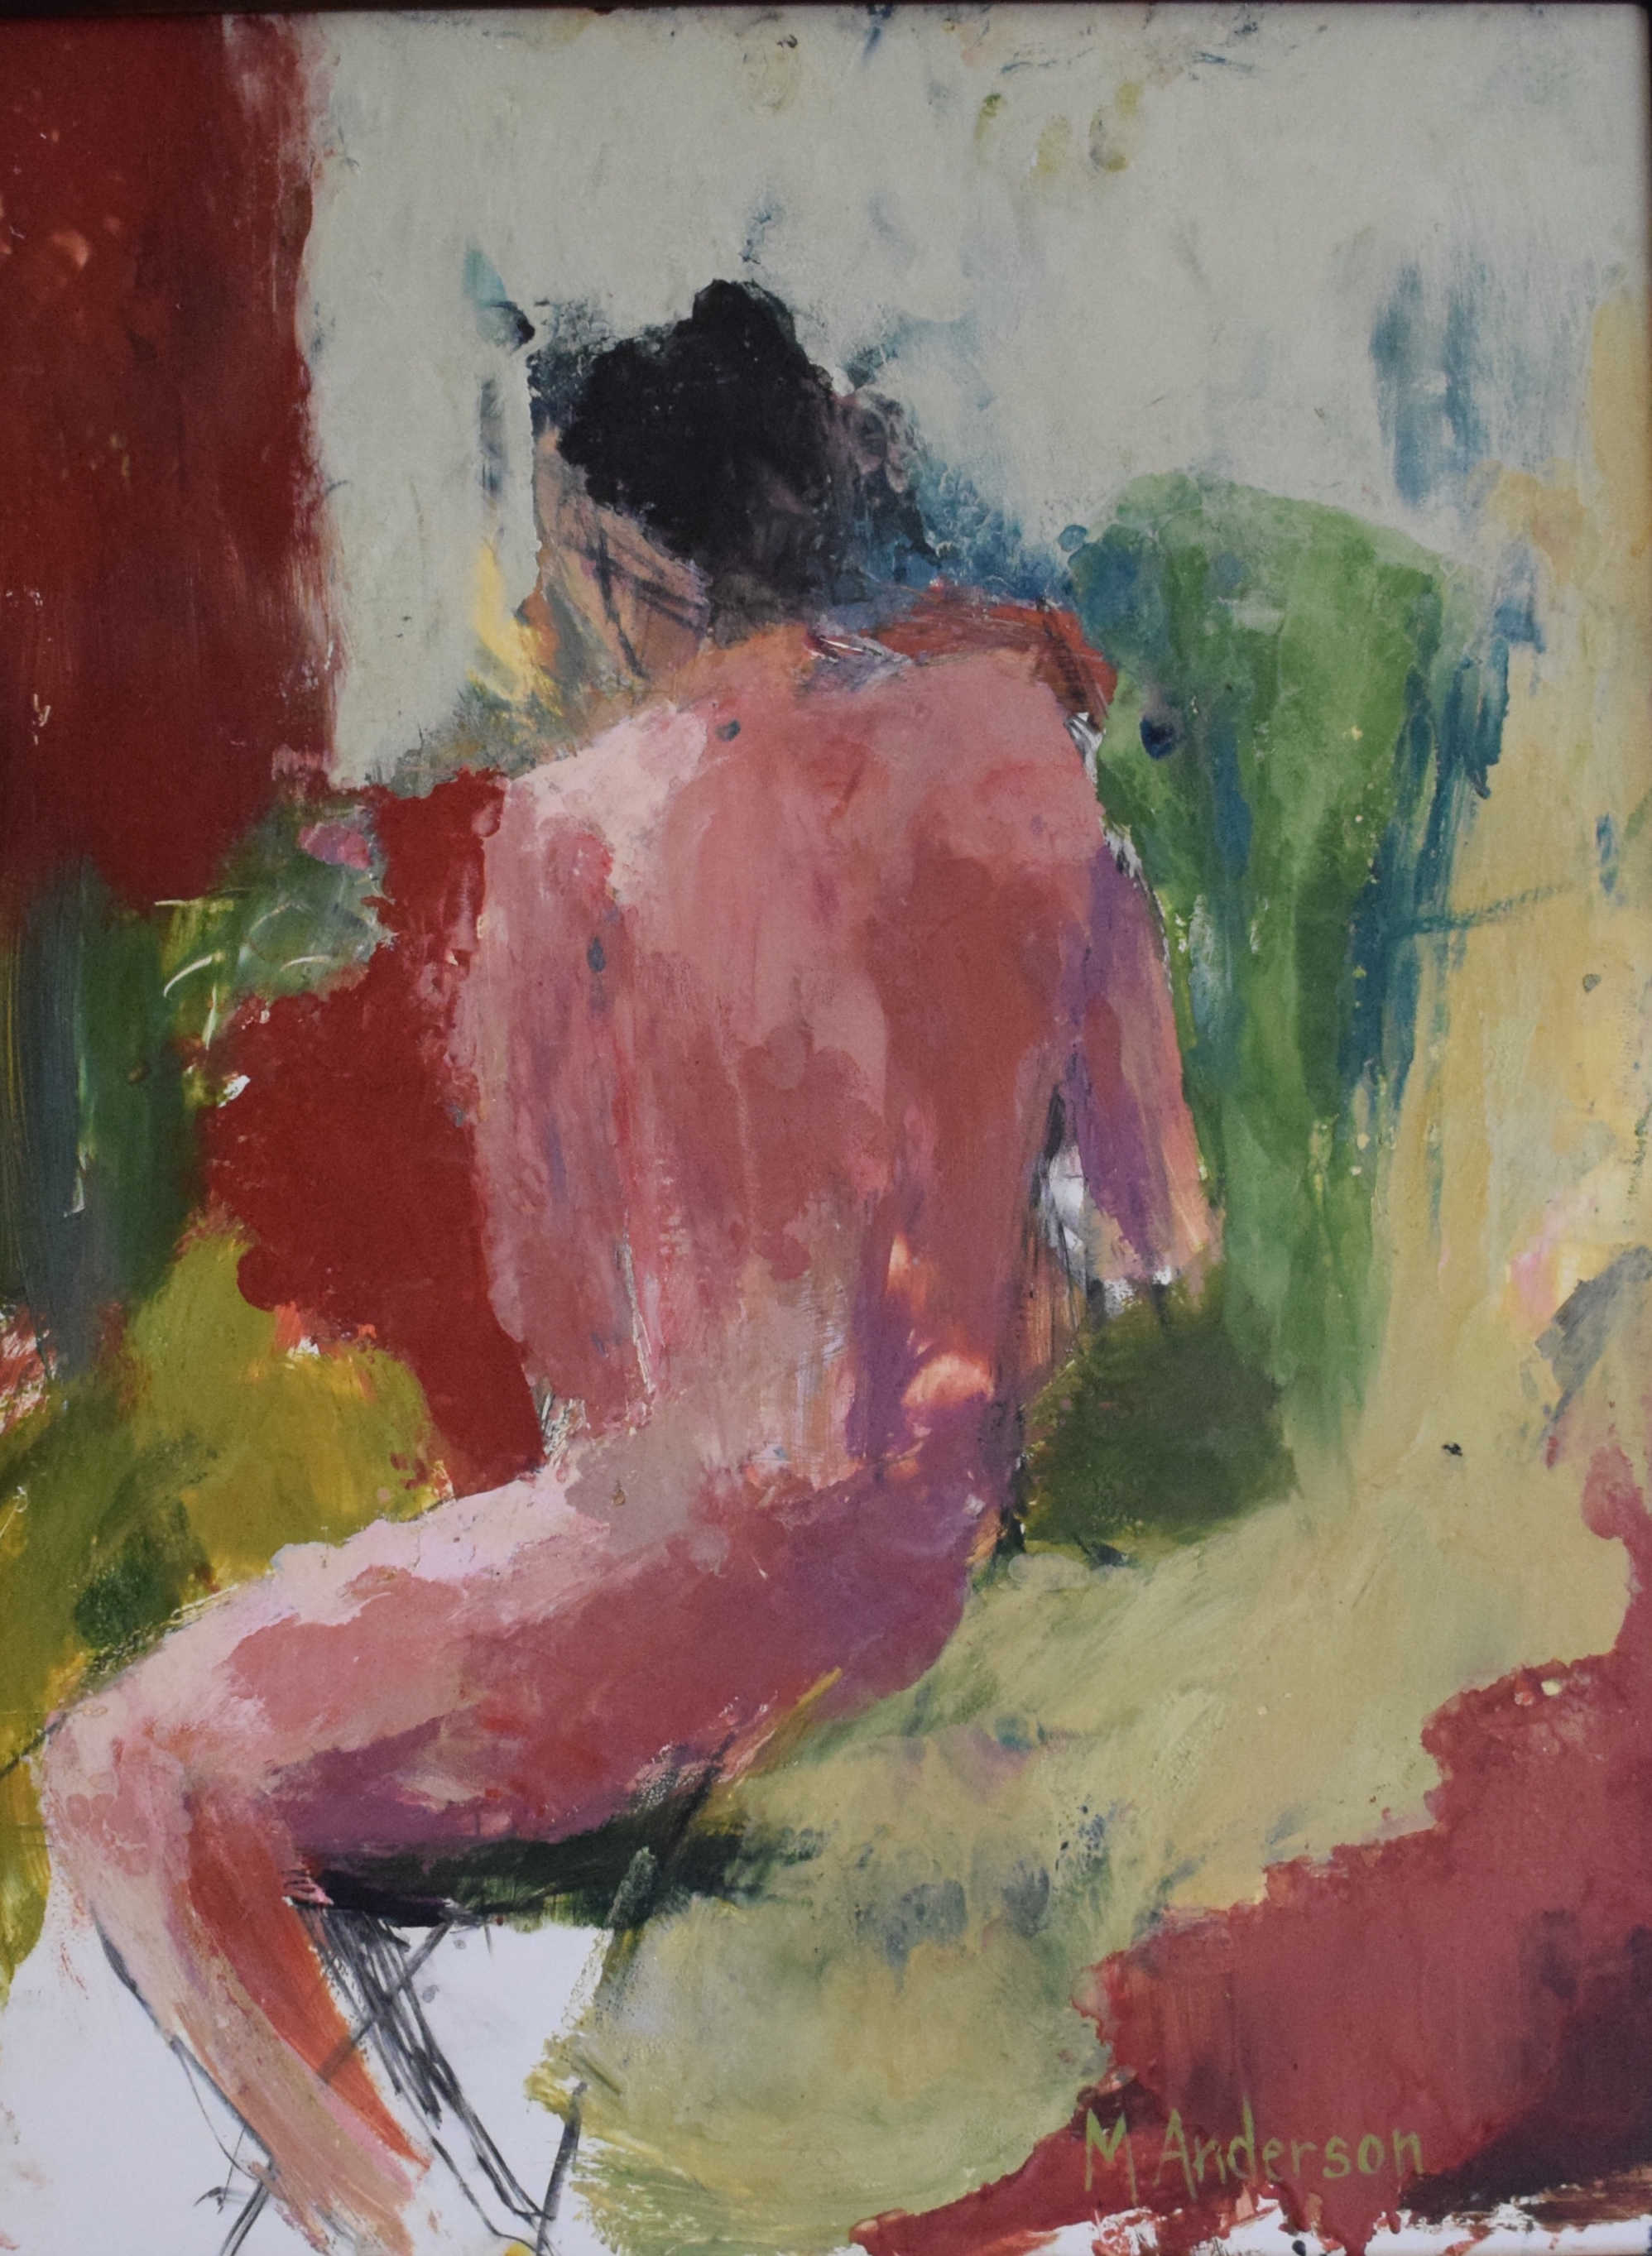 The Girl - Sold